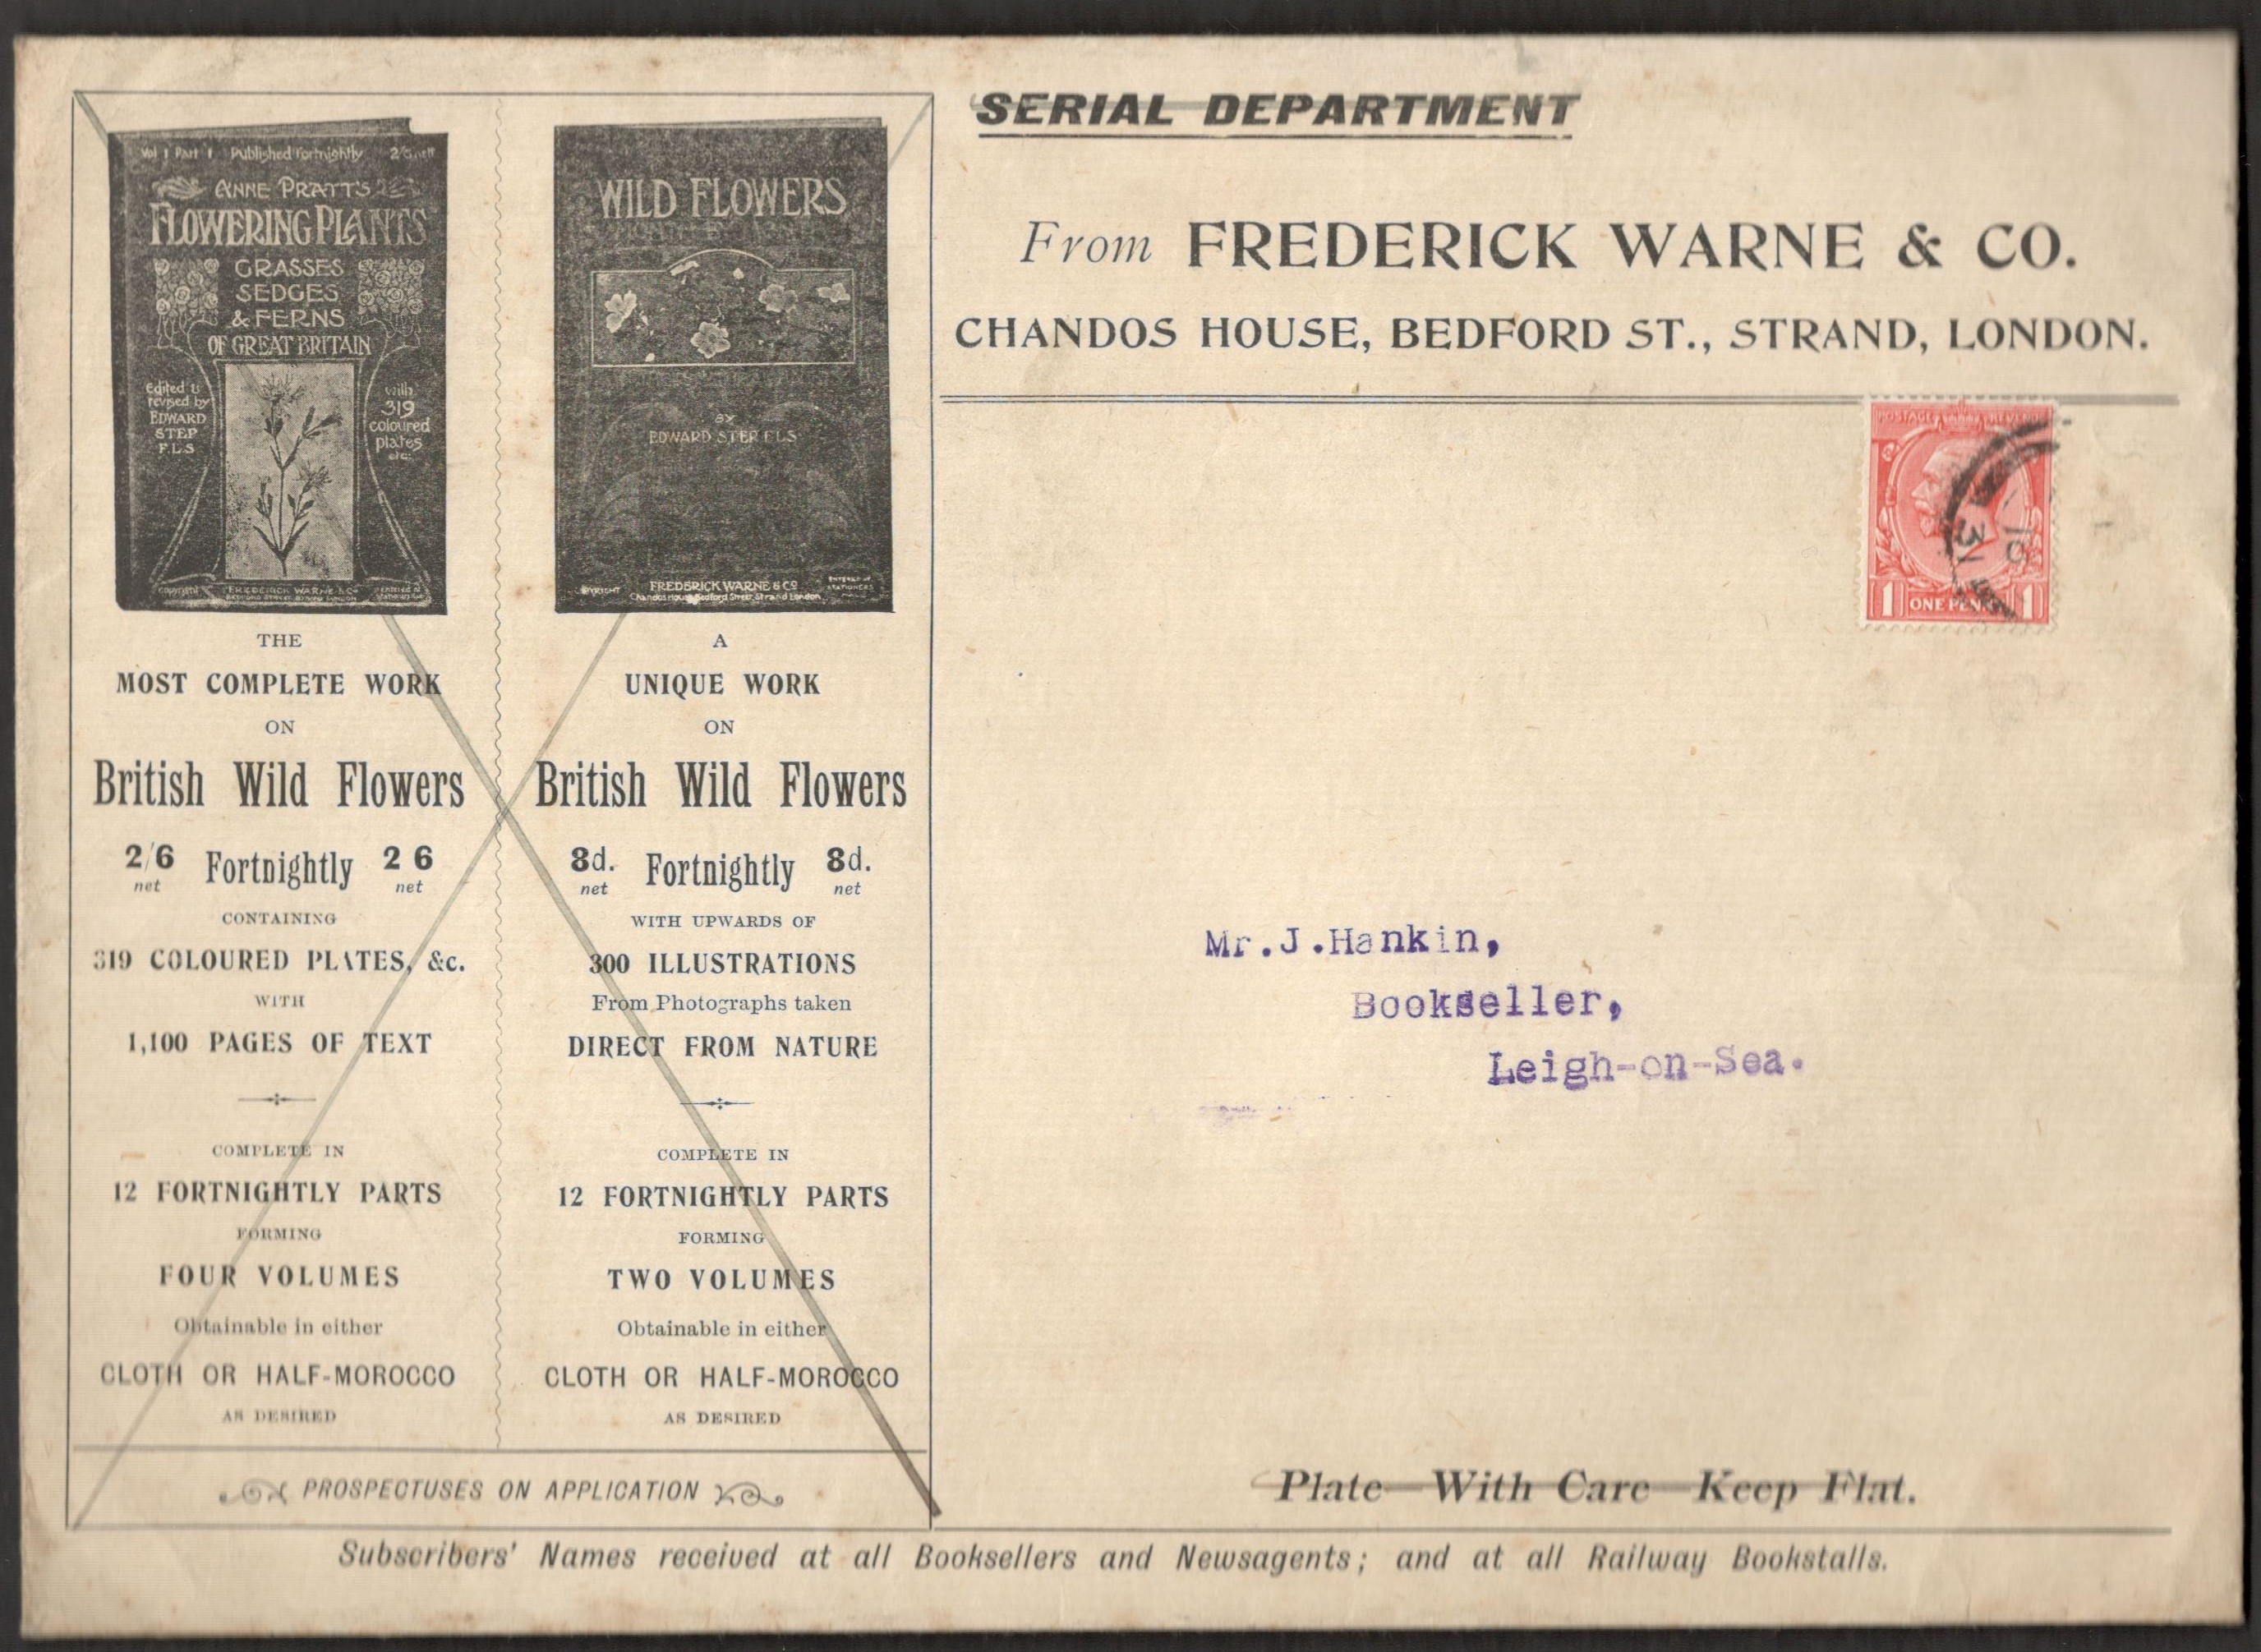 Lot 17 - ADVERTISING ENVELOPE FROM FREDERICK WARNE & CO